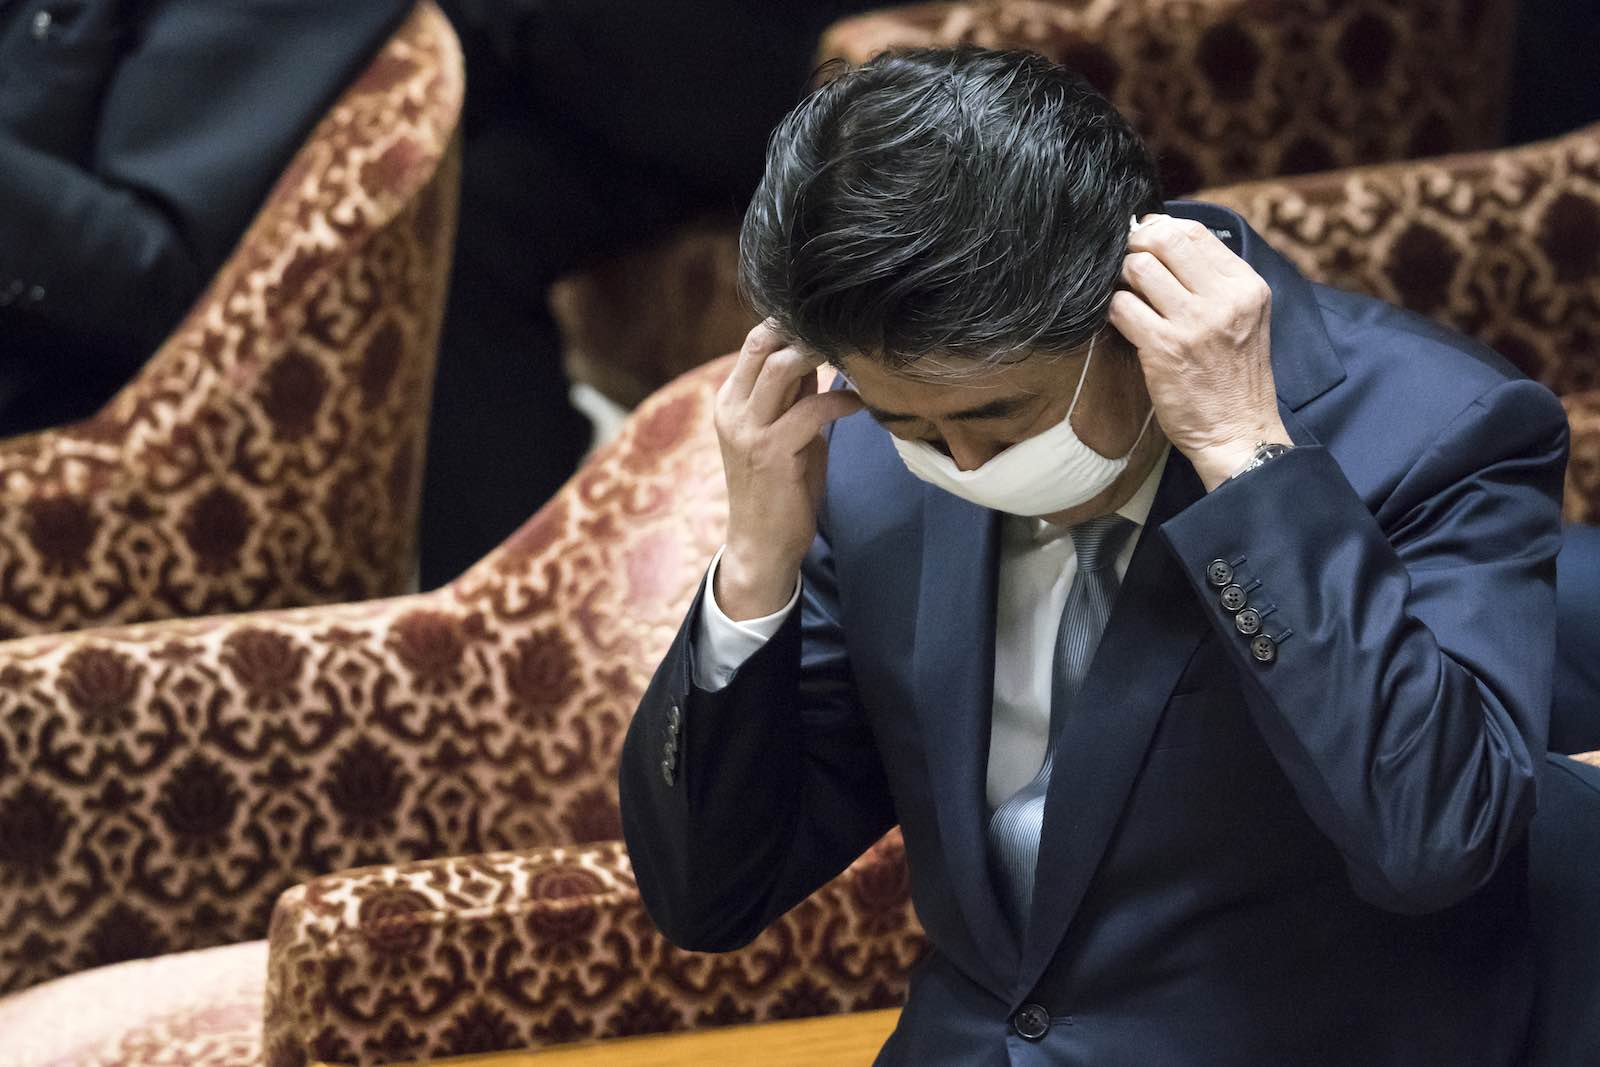 Japan's Prime Minister Abe Shinzo during a budget committee meeting at the lower house of parliament on 28 April (Tomohiro Ohsumi/Getty Images)